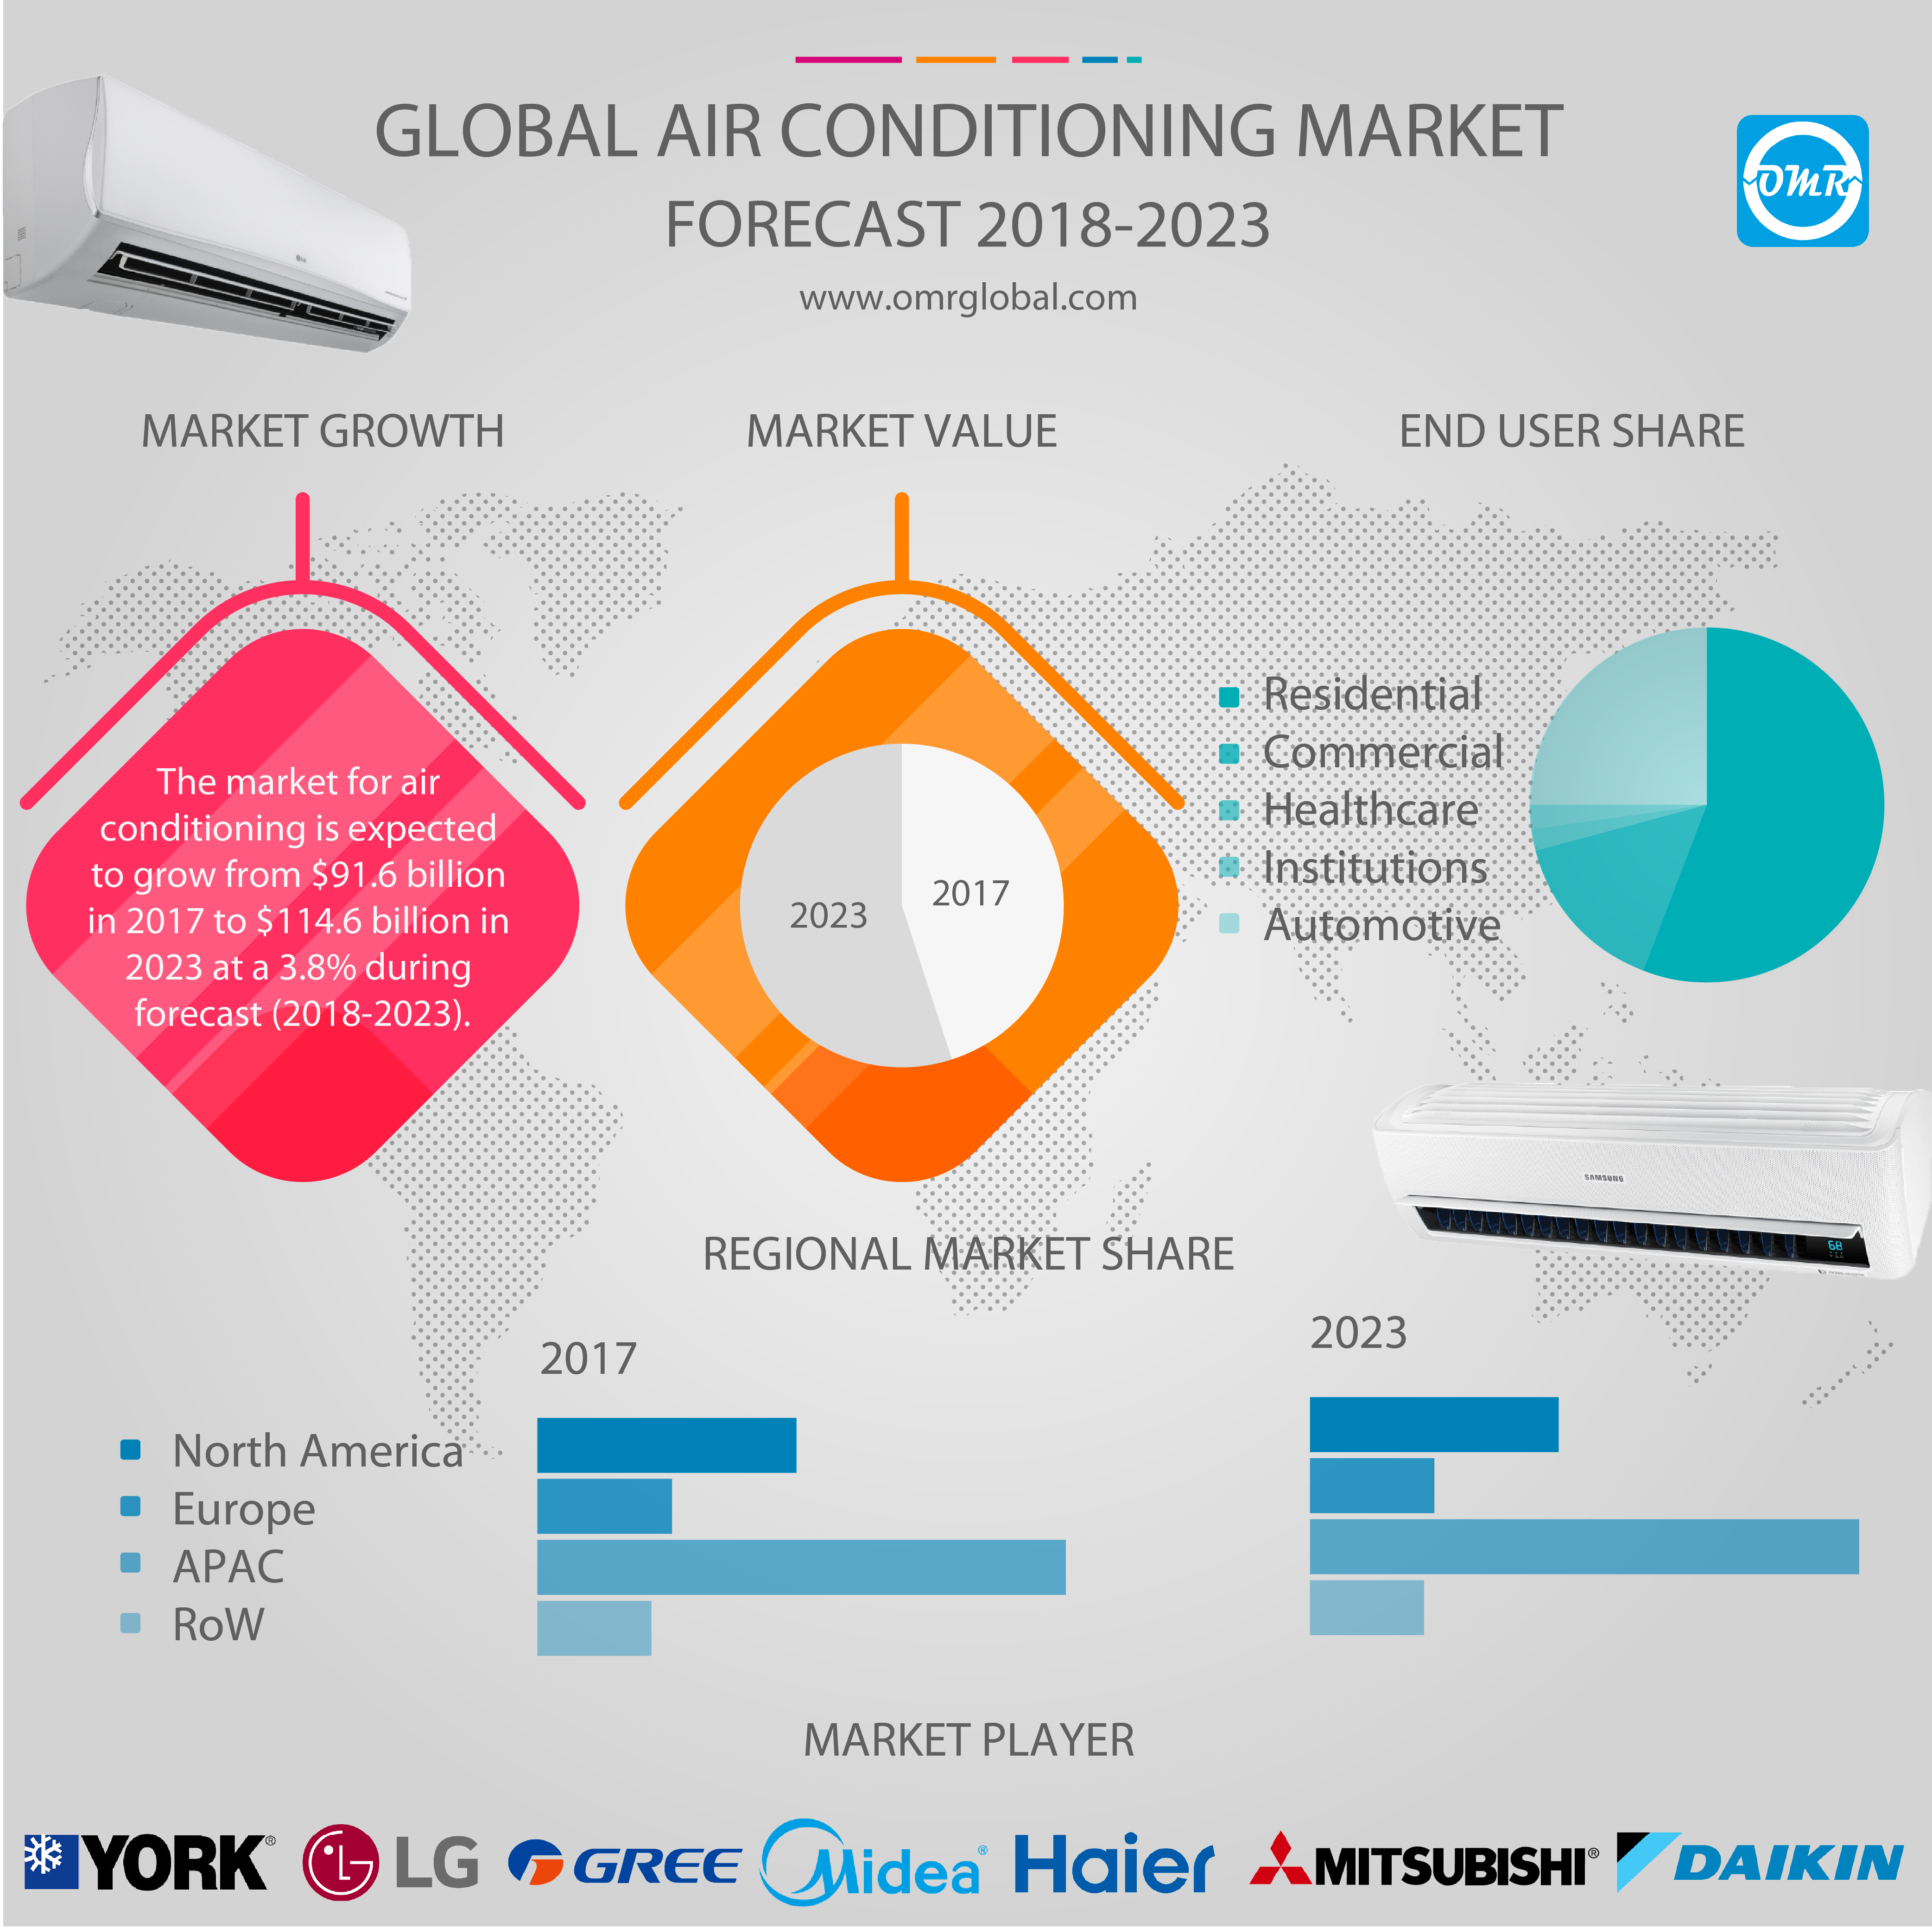 Global Air Conditioning Market Research And Forecast 2018 2023